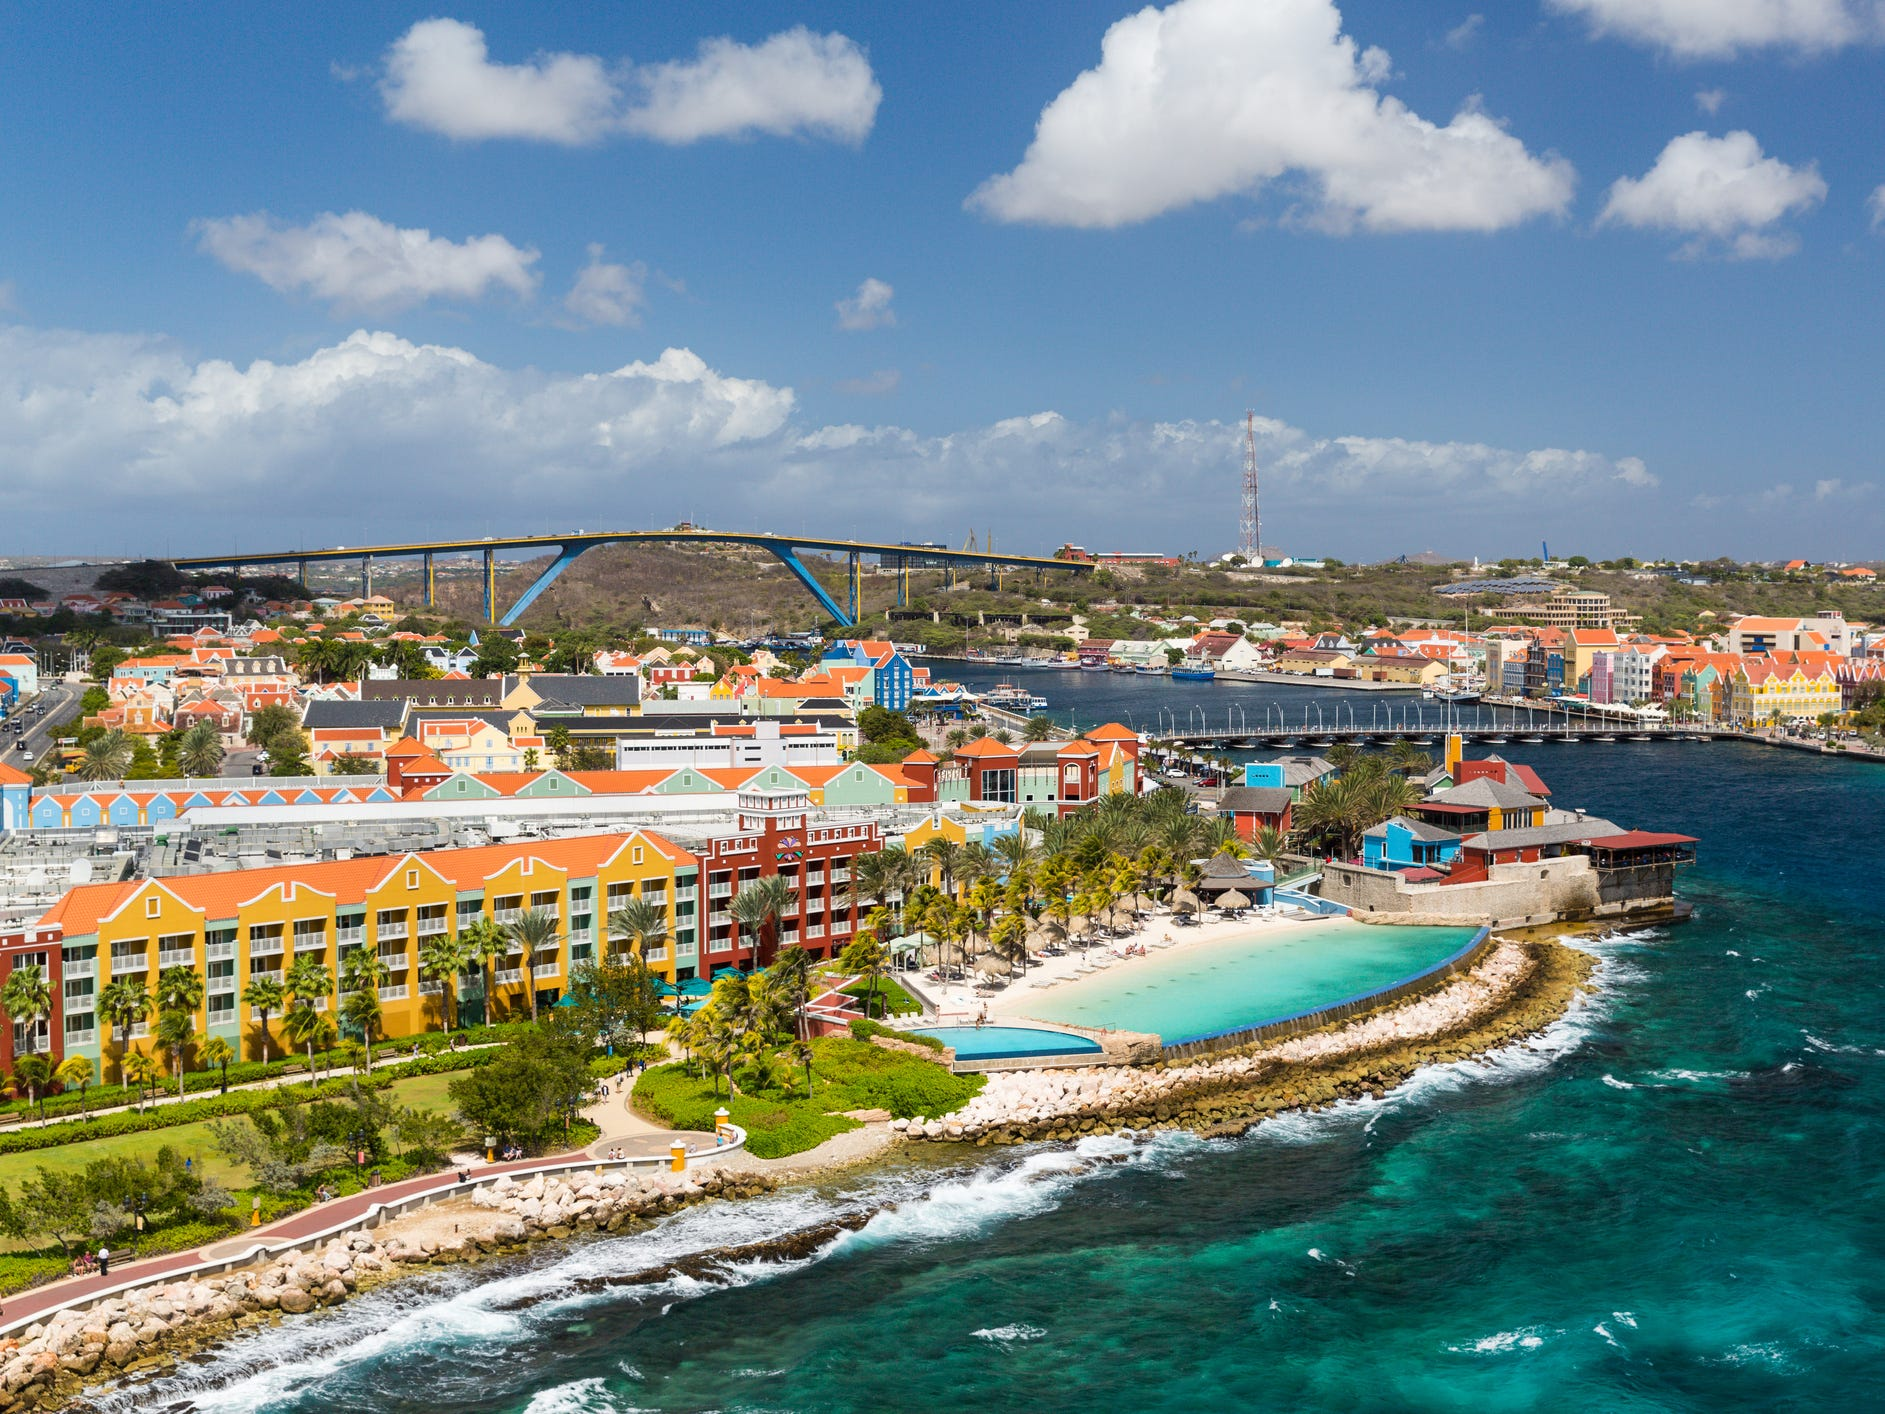 Willemstad, Curacao: The brightly painted Dutch colonial-style buildings of this Caribbean capital have earned a spot on the UNESCO World Heritage list.